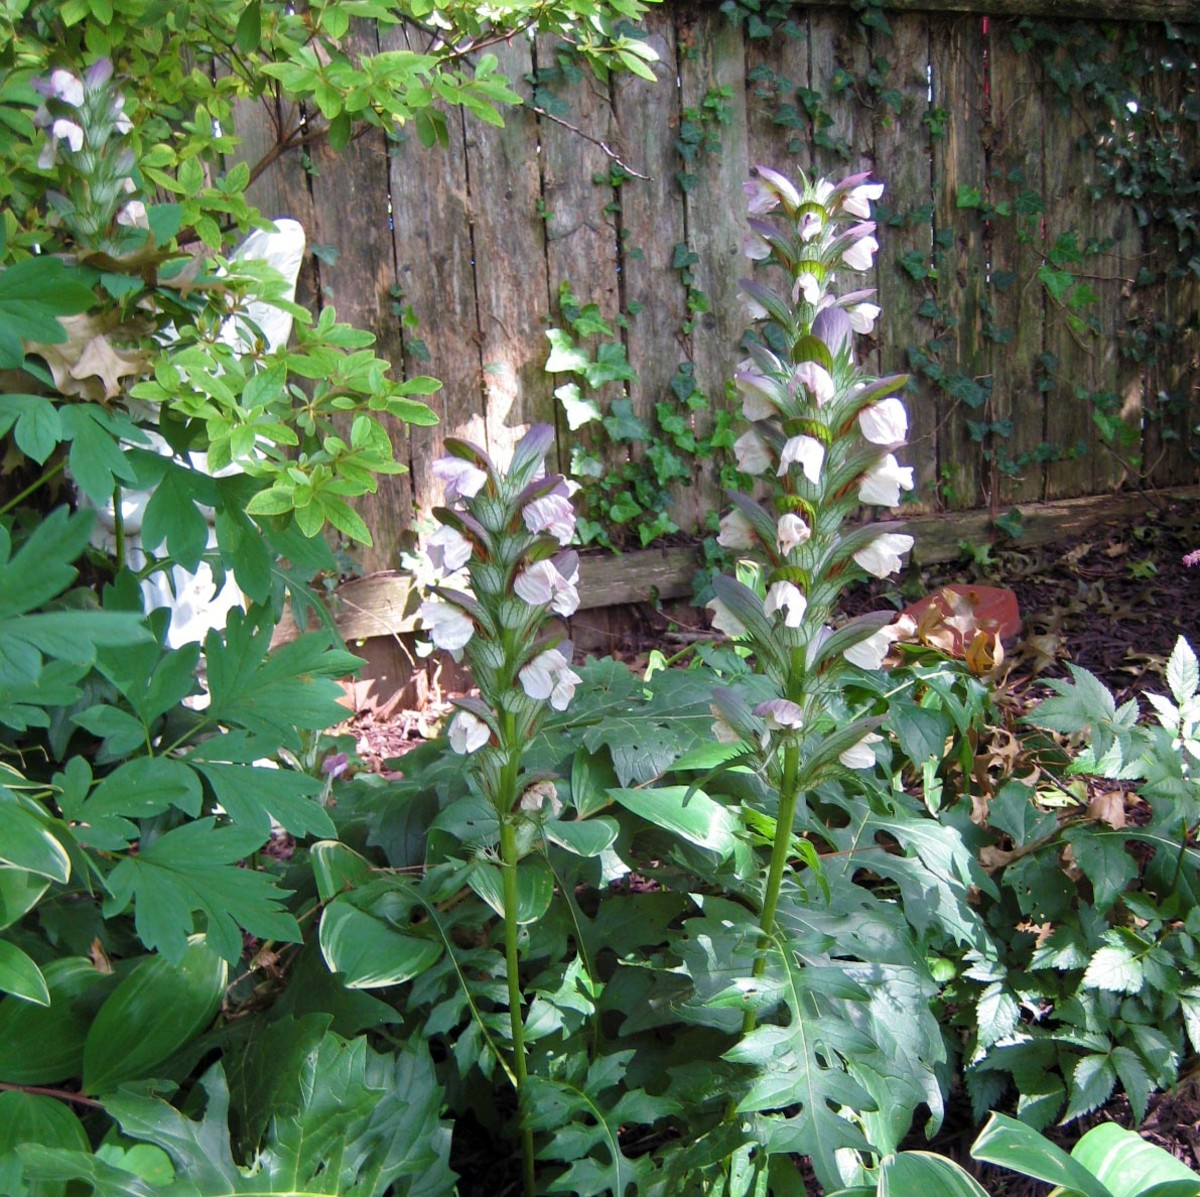 Bears Breeches Or Acanthus Mollis An Ancient Perennial Hubpages